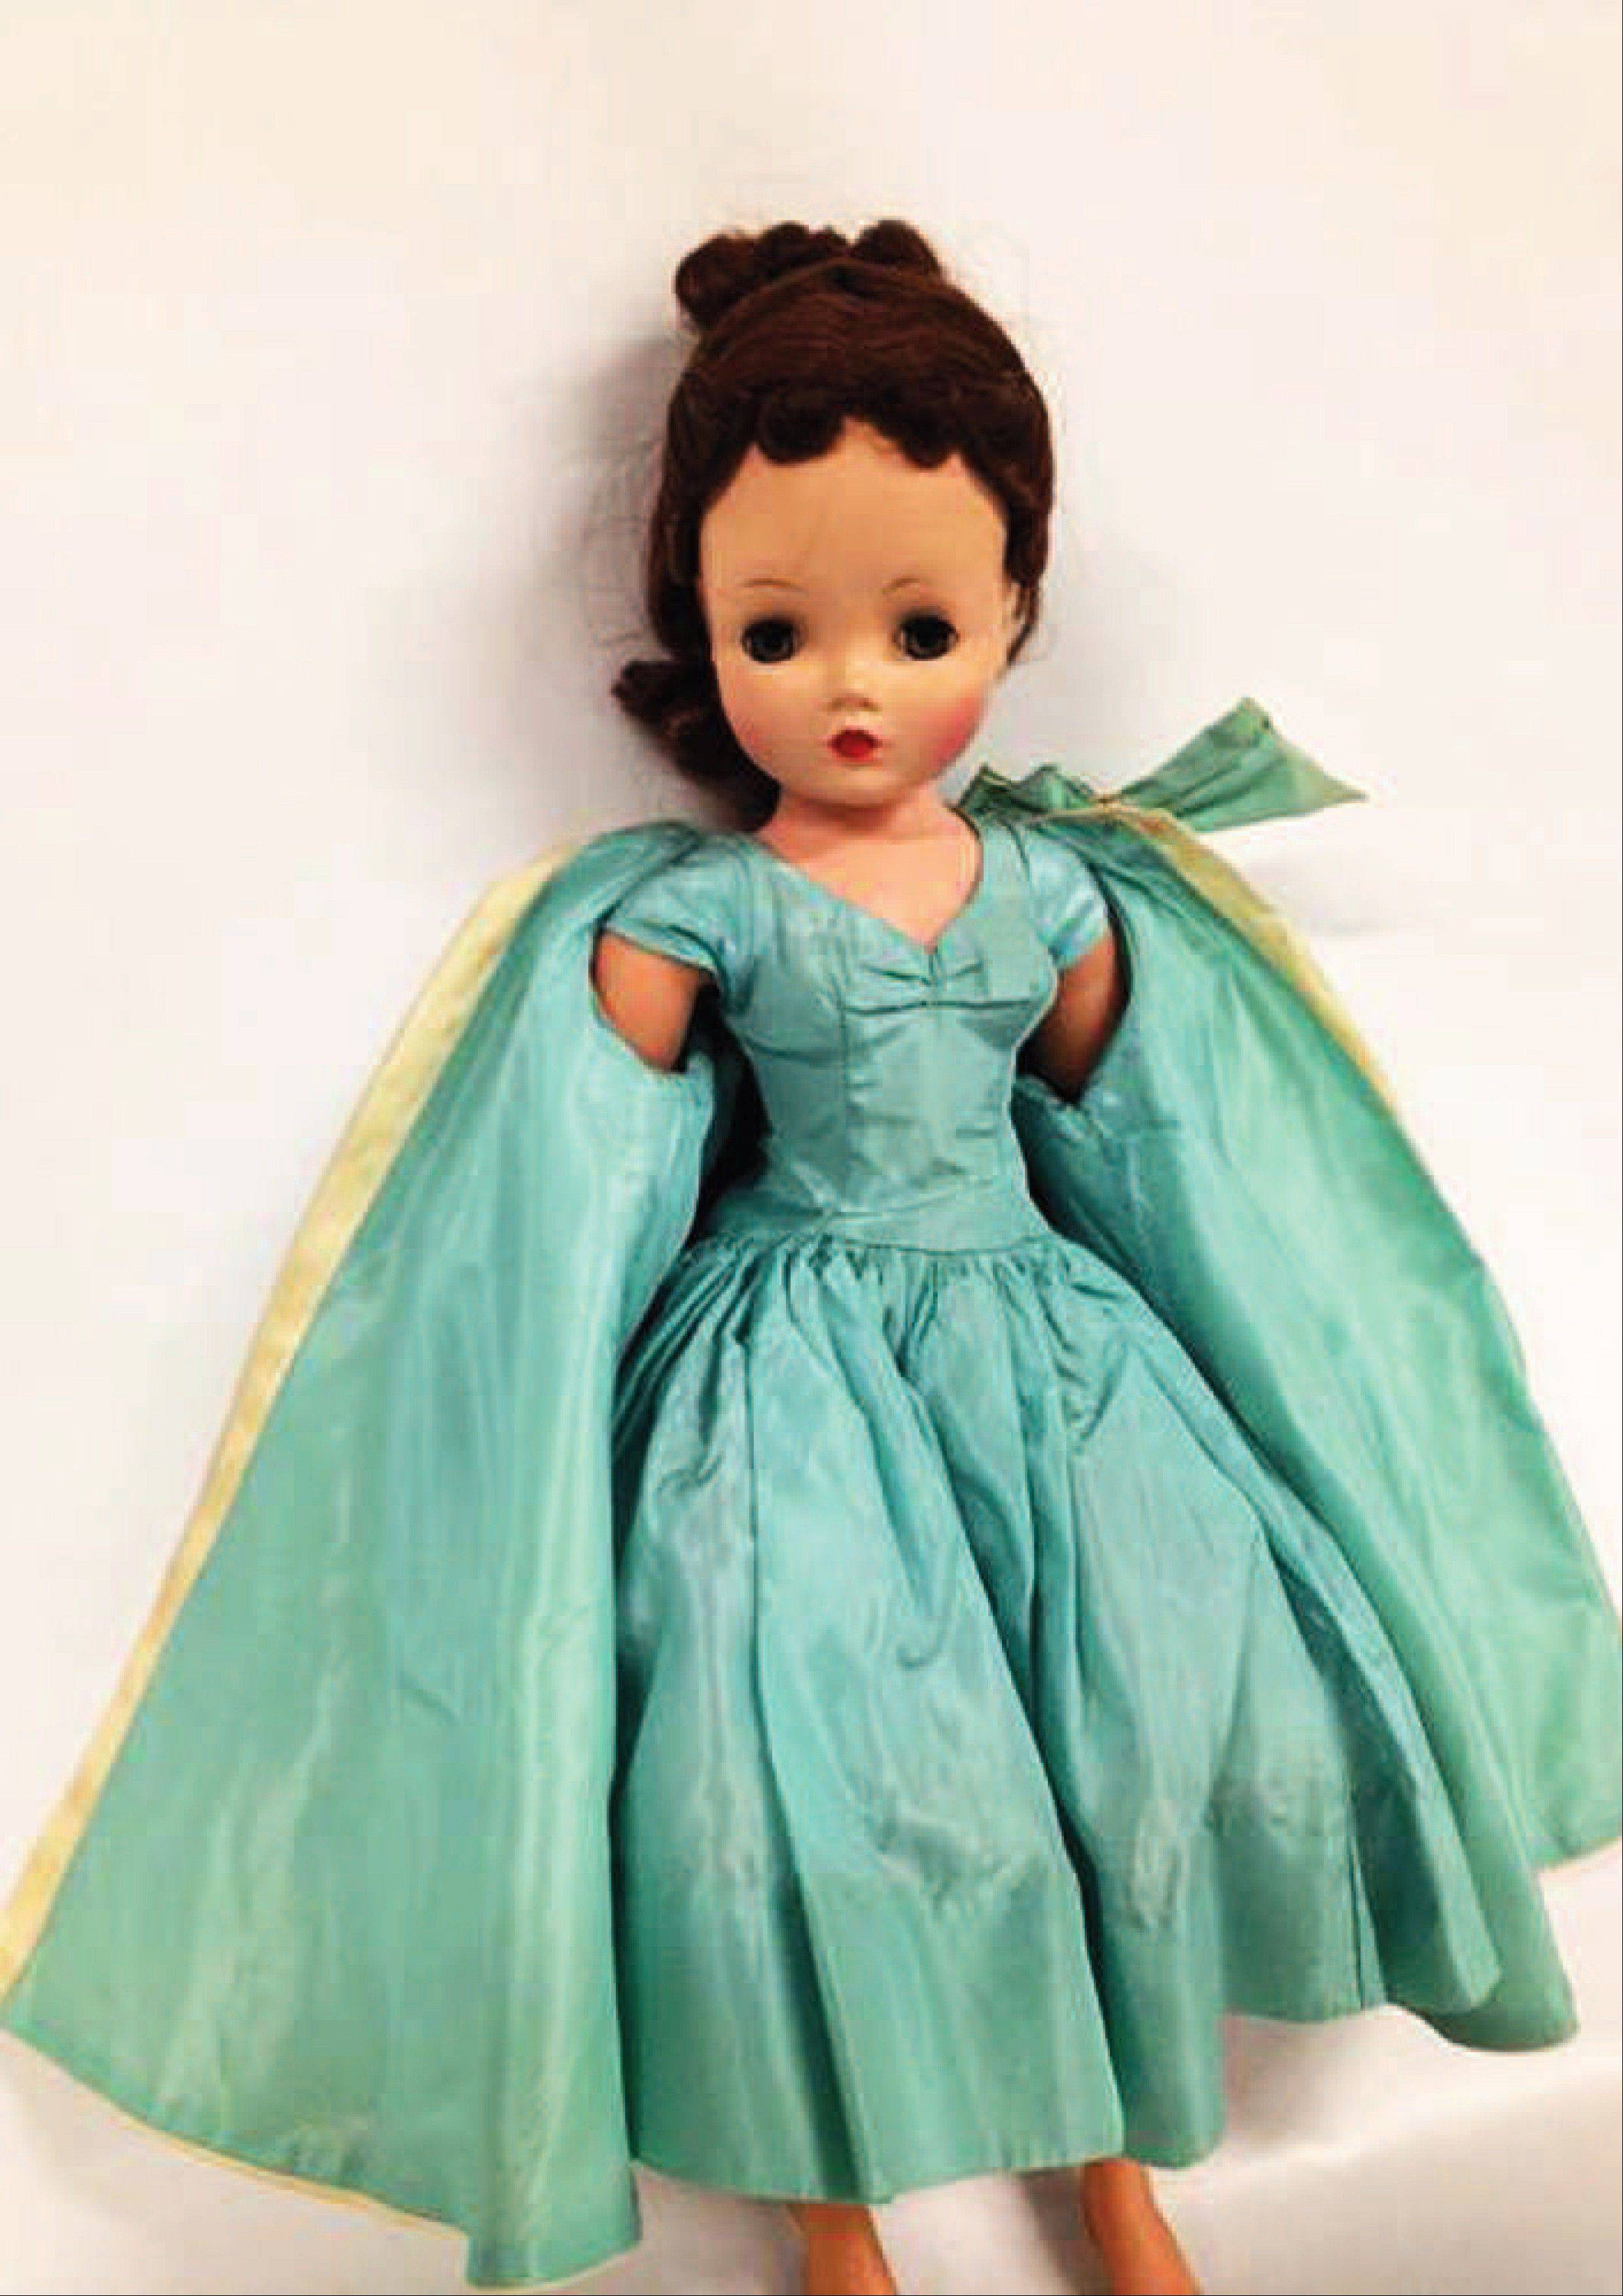 A Madame Alexander Cissy doll from the 1950s is now a hot collectible.